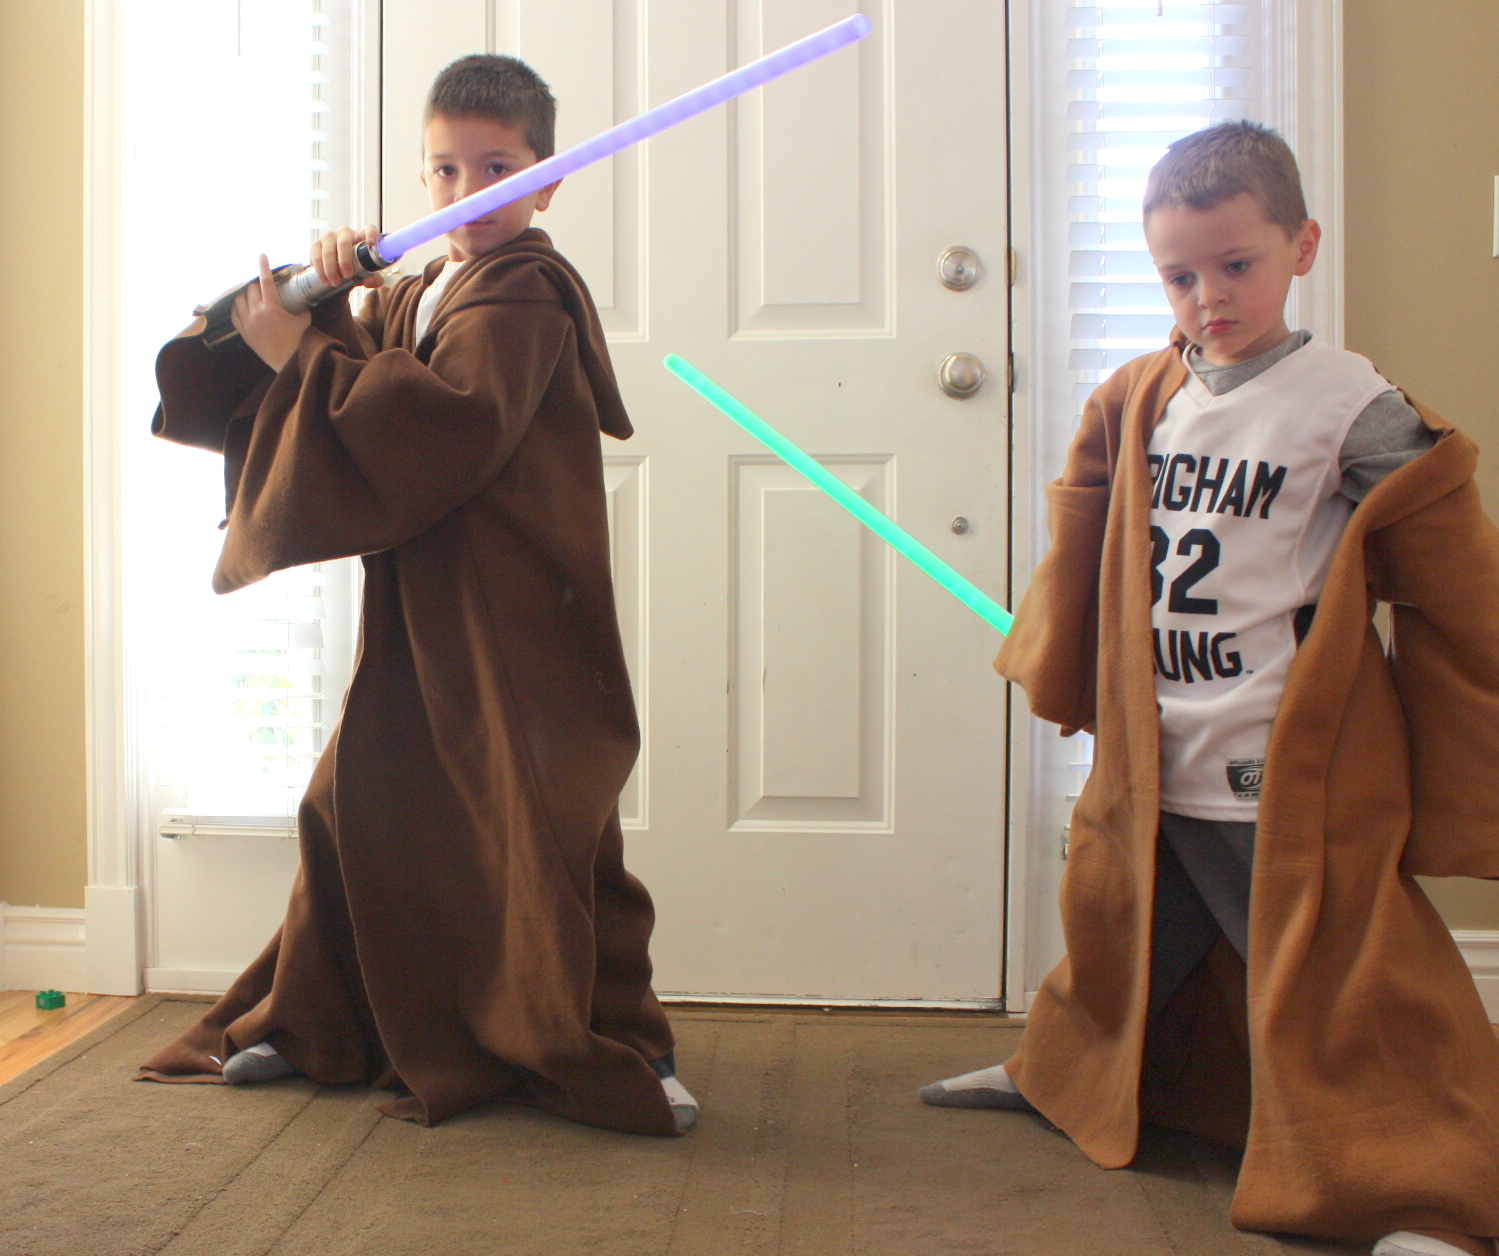 Jedi robes diary of a quilter a quilt blog jedi robes solutioingenieria Choice Image